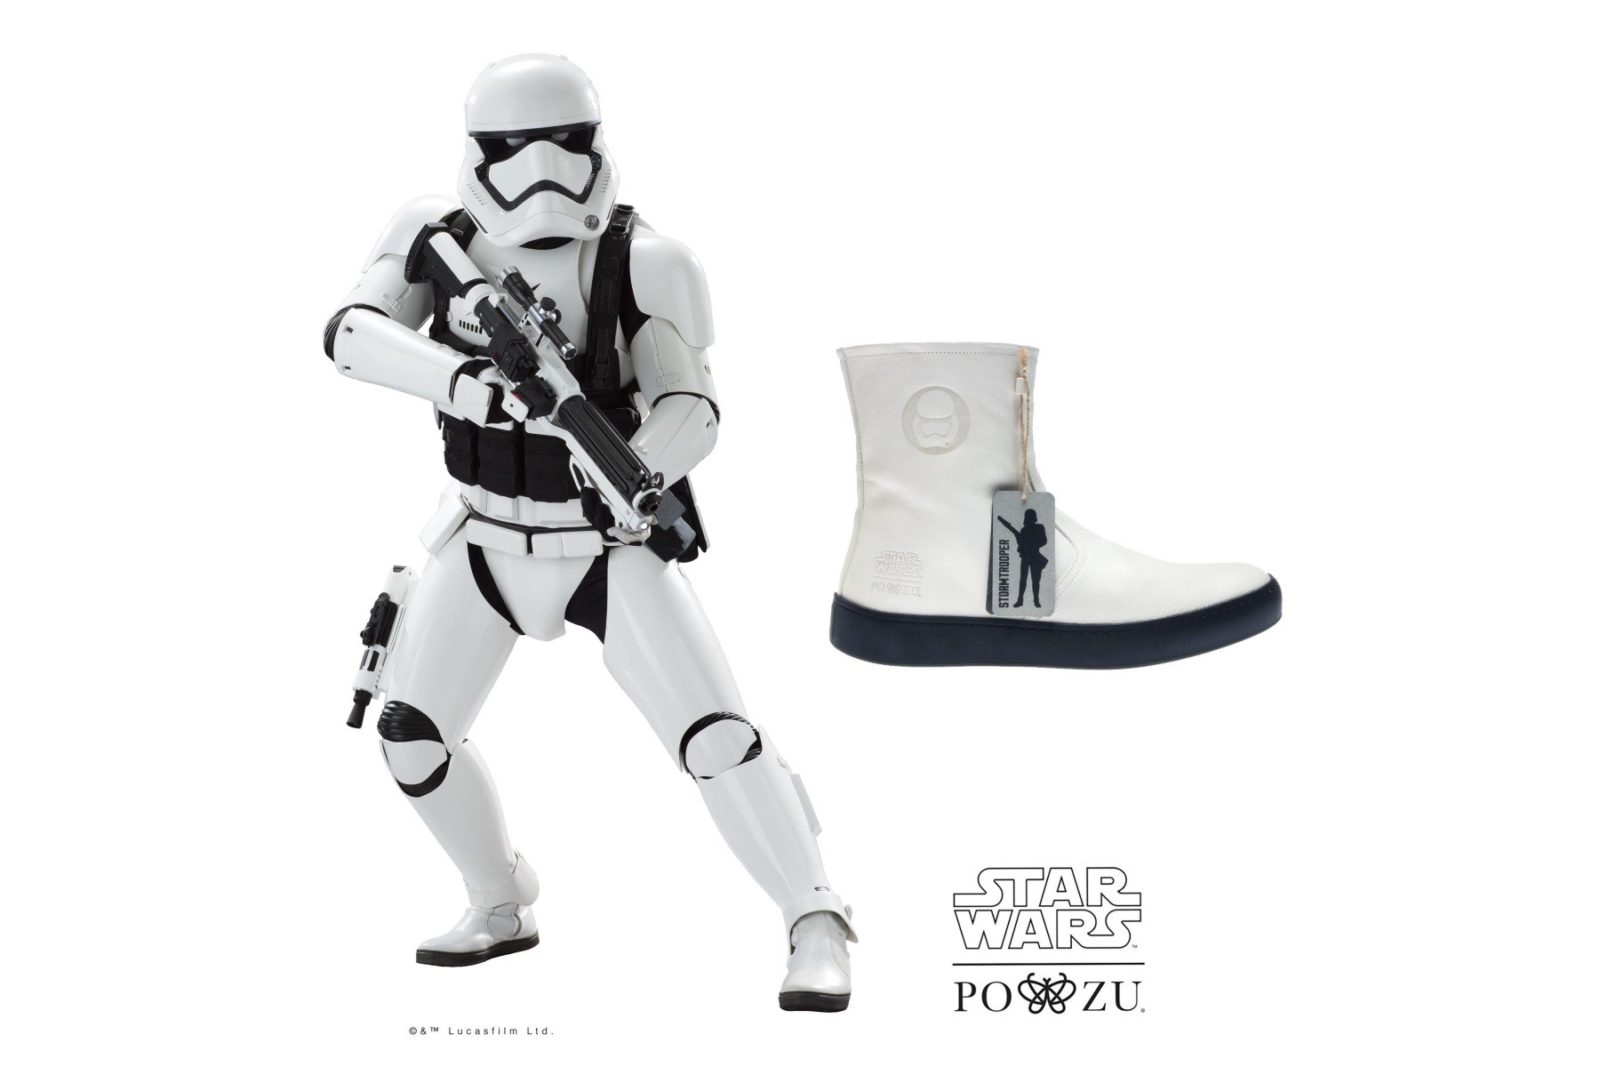 Po-Zu x Star Wars Stormtrooper boot preview!